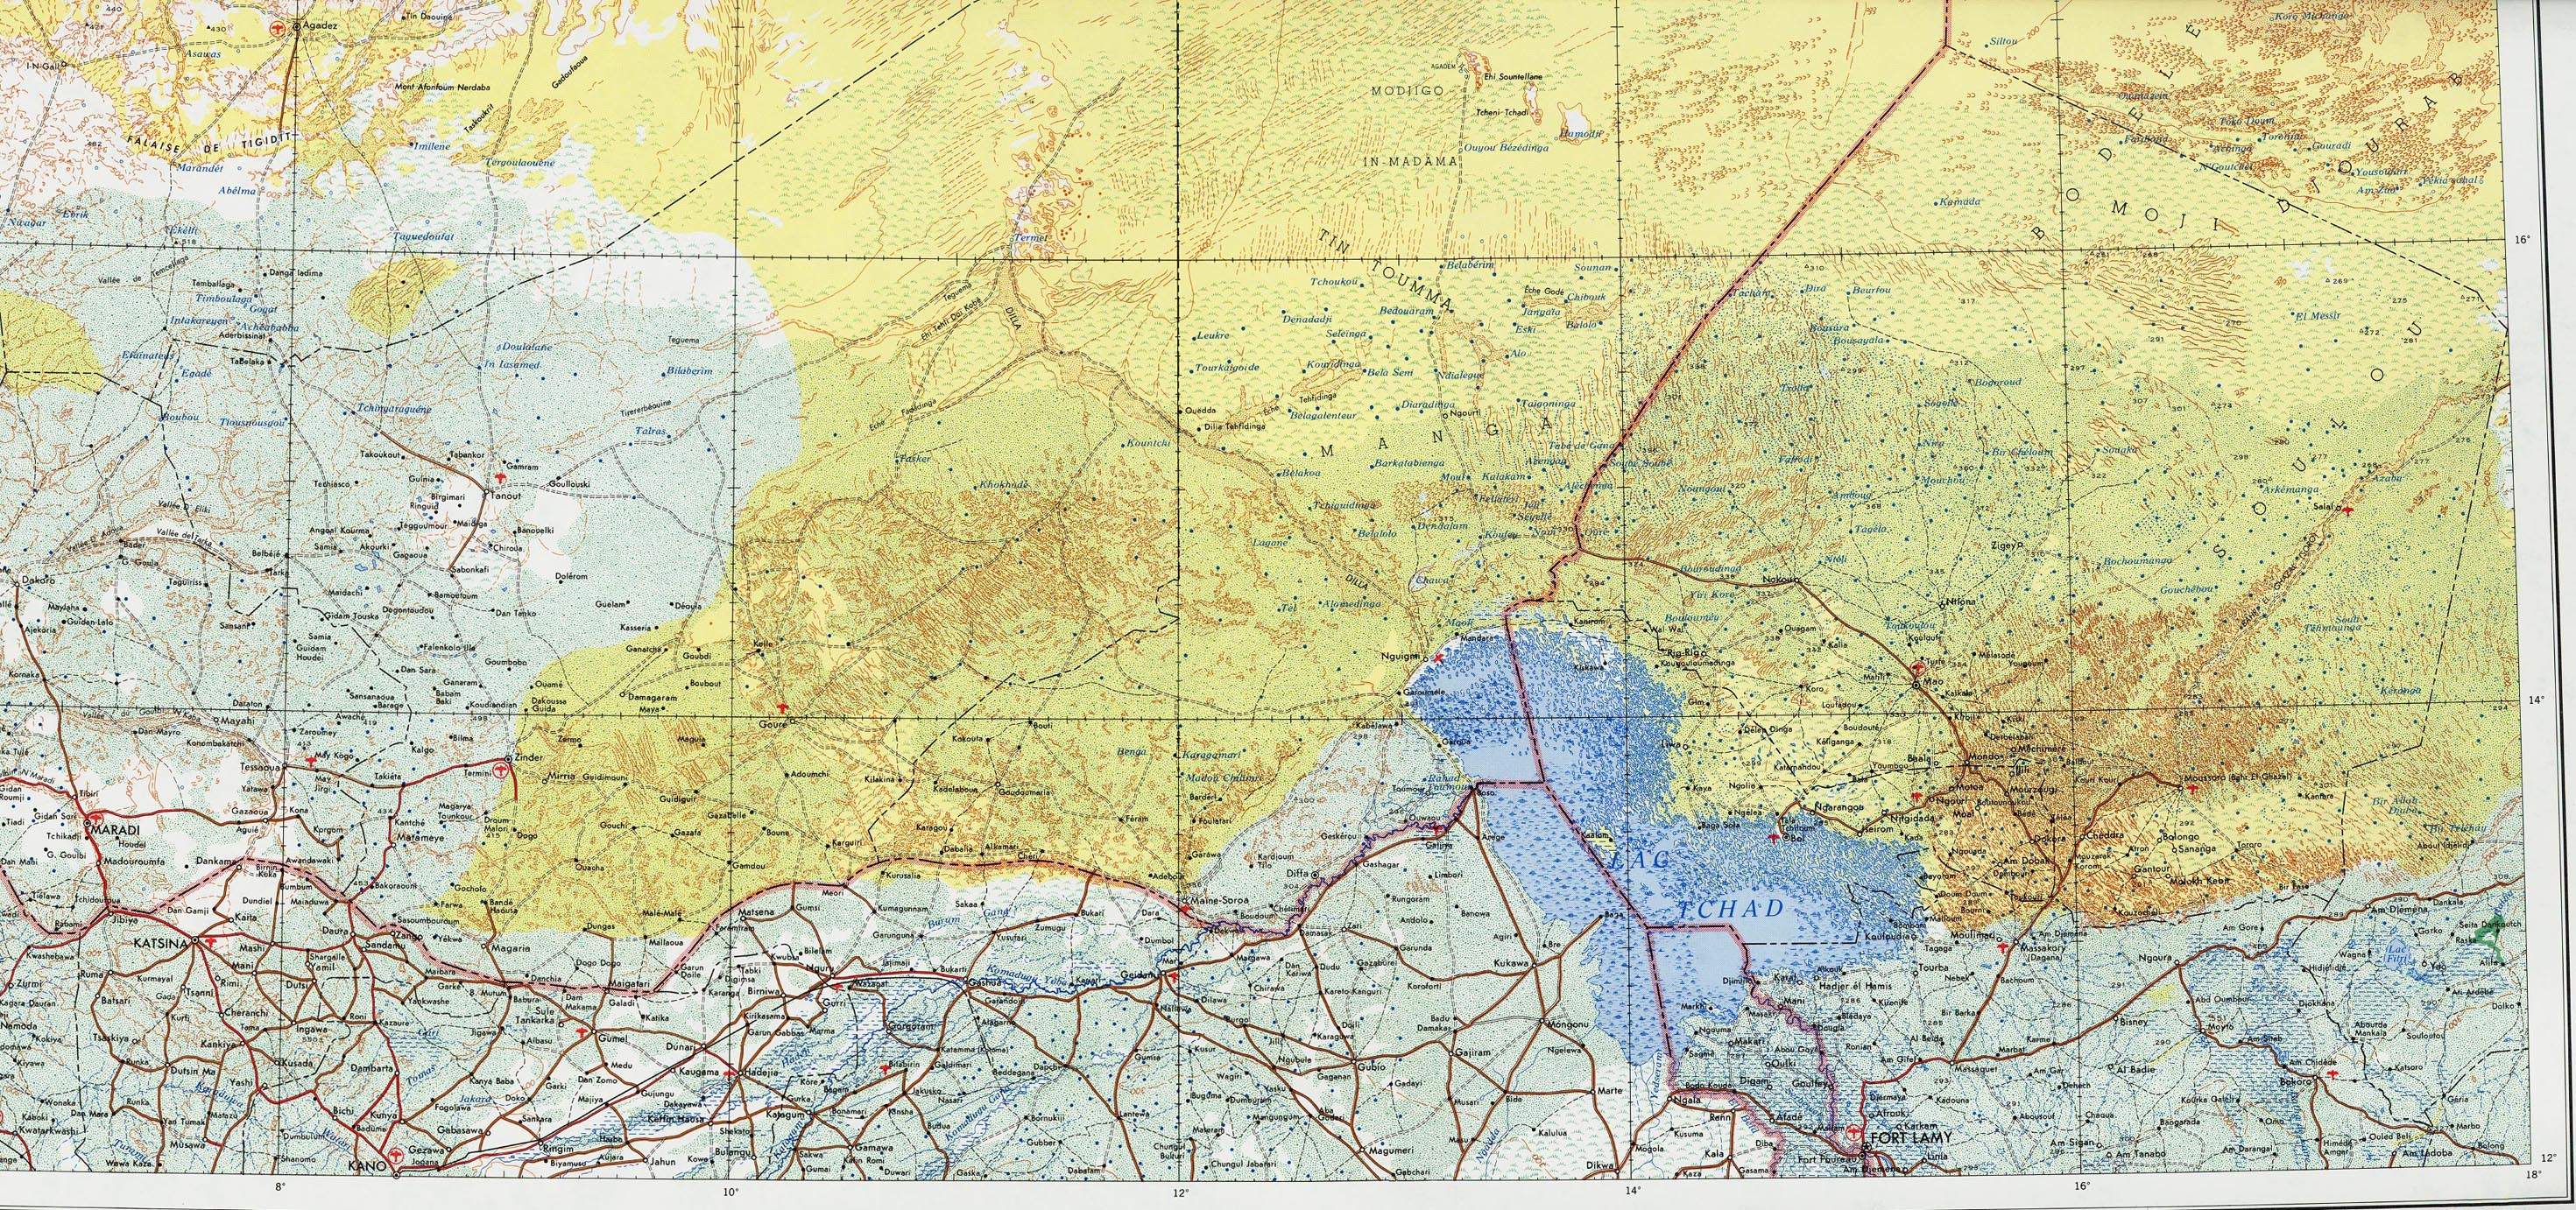 Lake Chad and Eastern Niger Physical Map Lake Chad mappery